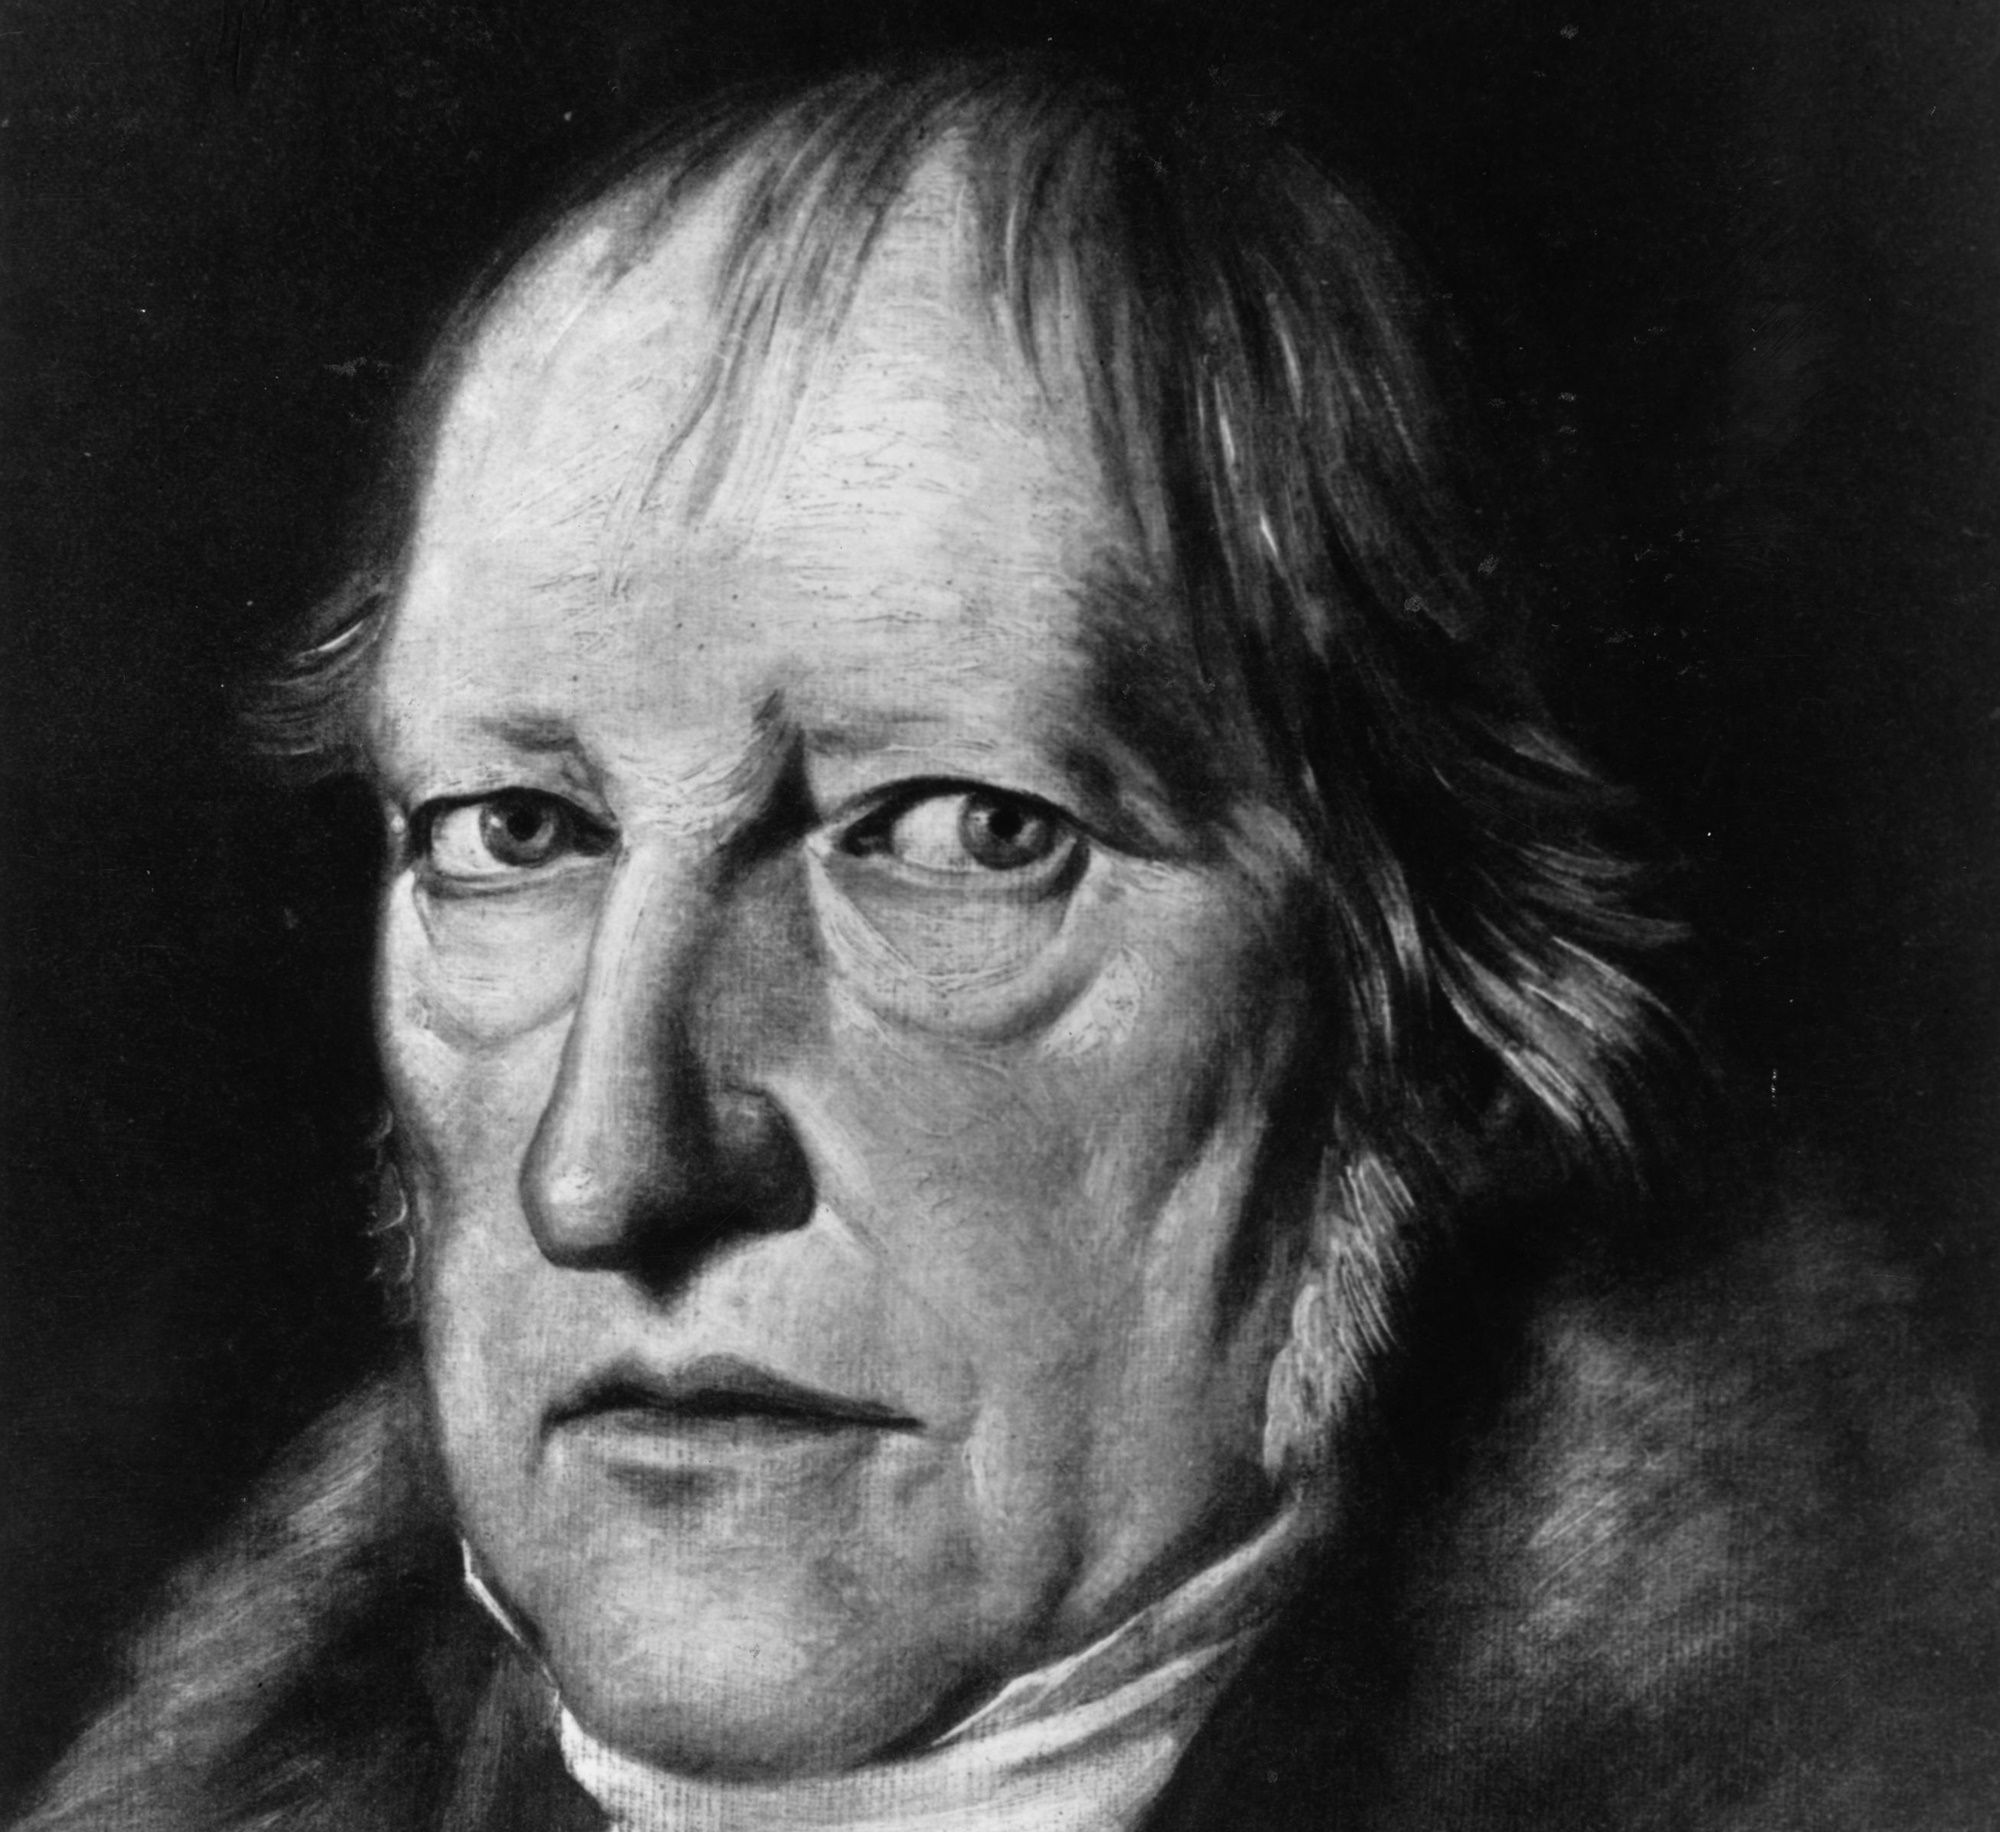 circa 1820:  German philosopher Georg Wilhelm Friedrich Hegel (1770 - 1831). A Professor at Heidelberg (1816 - 1818) and Berlin (1818 - 1831), he differed with Kant in allowing that mankind possessed absolute knowledge. He influenced Karl Marx and the Existentialists. Original Artwork: After Schlesinger.  (Photo by Henry Guttmann/Getty Images)